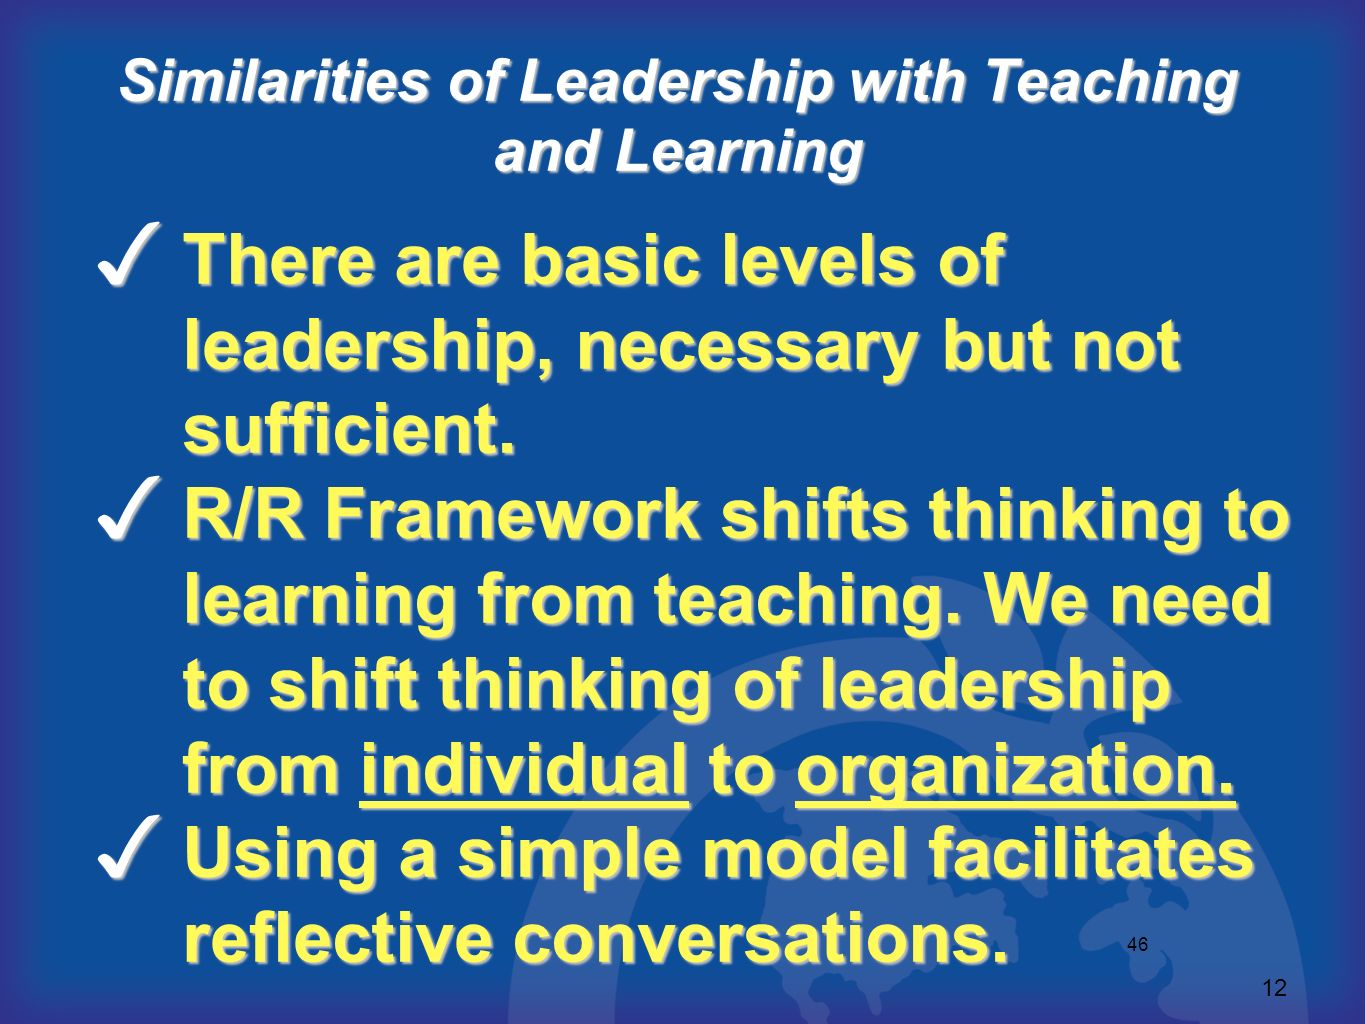 Similarities of Leadership with Teaching and Learning